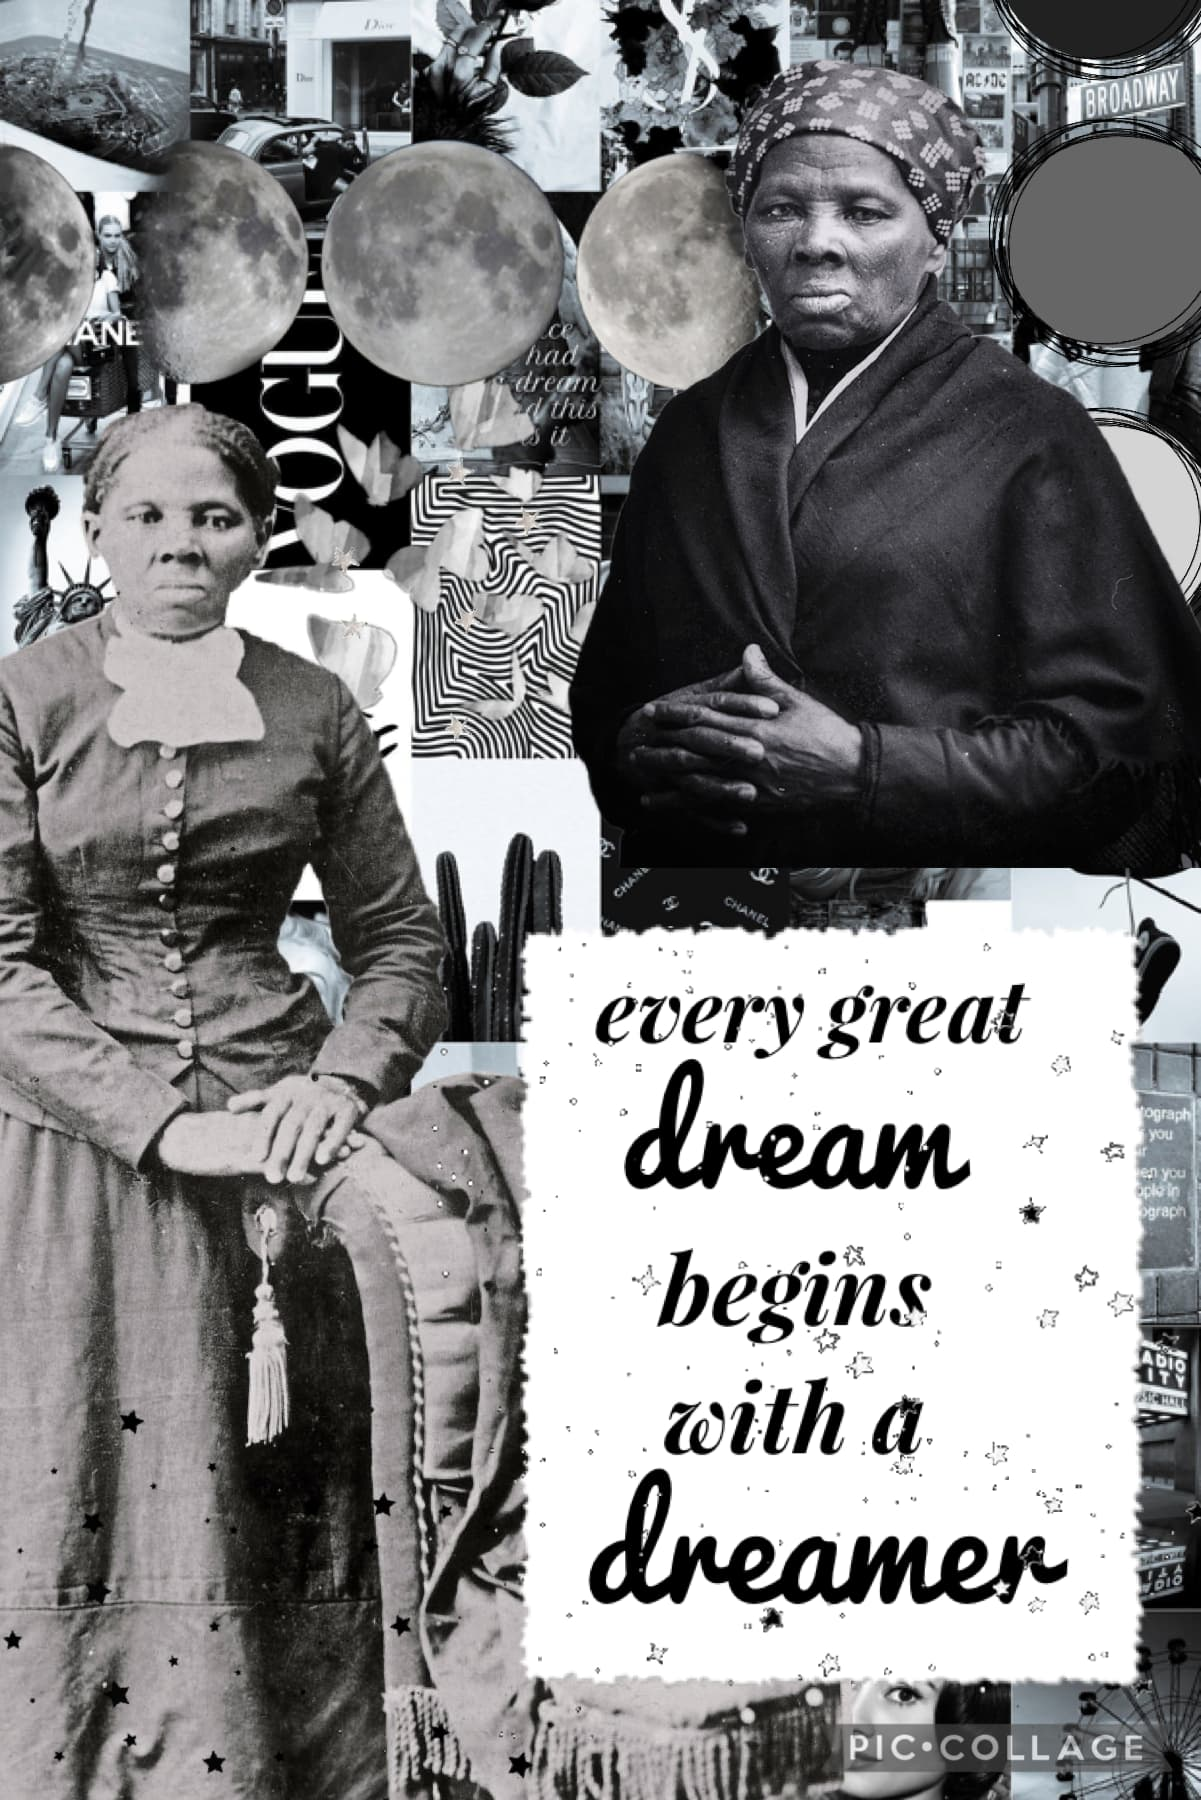 ✨tap✨ black history month collage! ♥️harriet tubman♥️